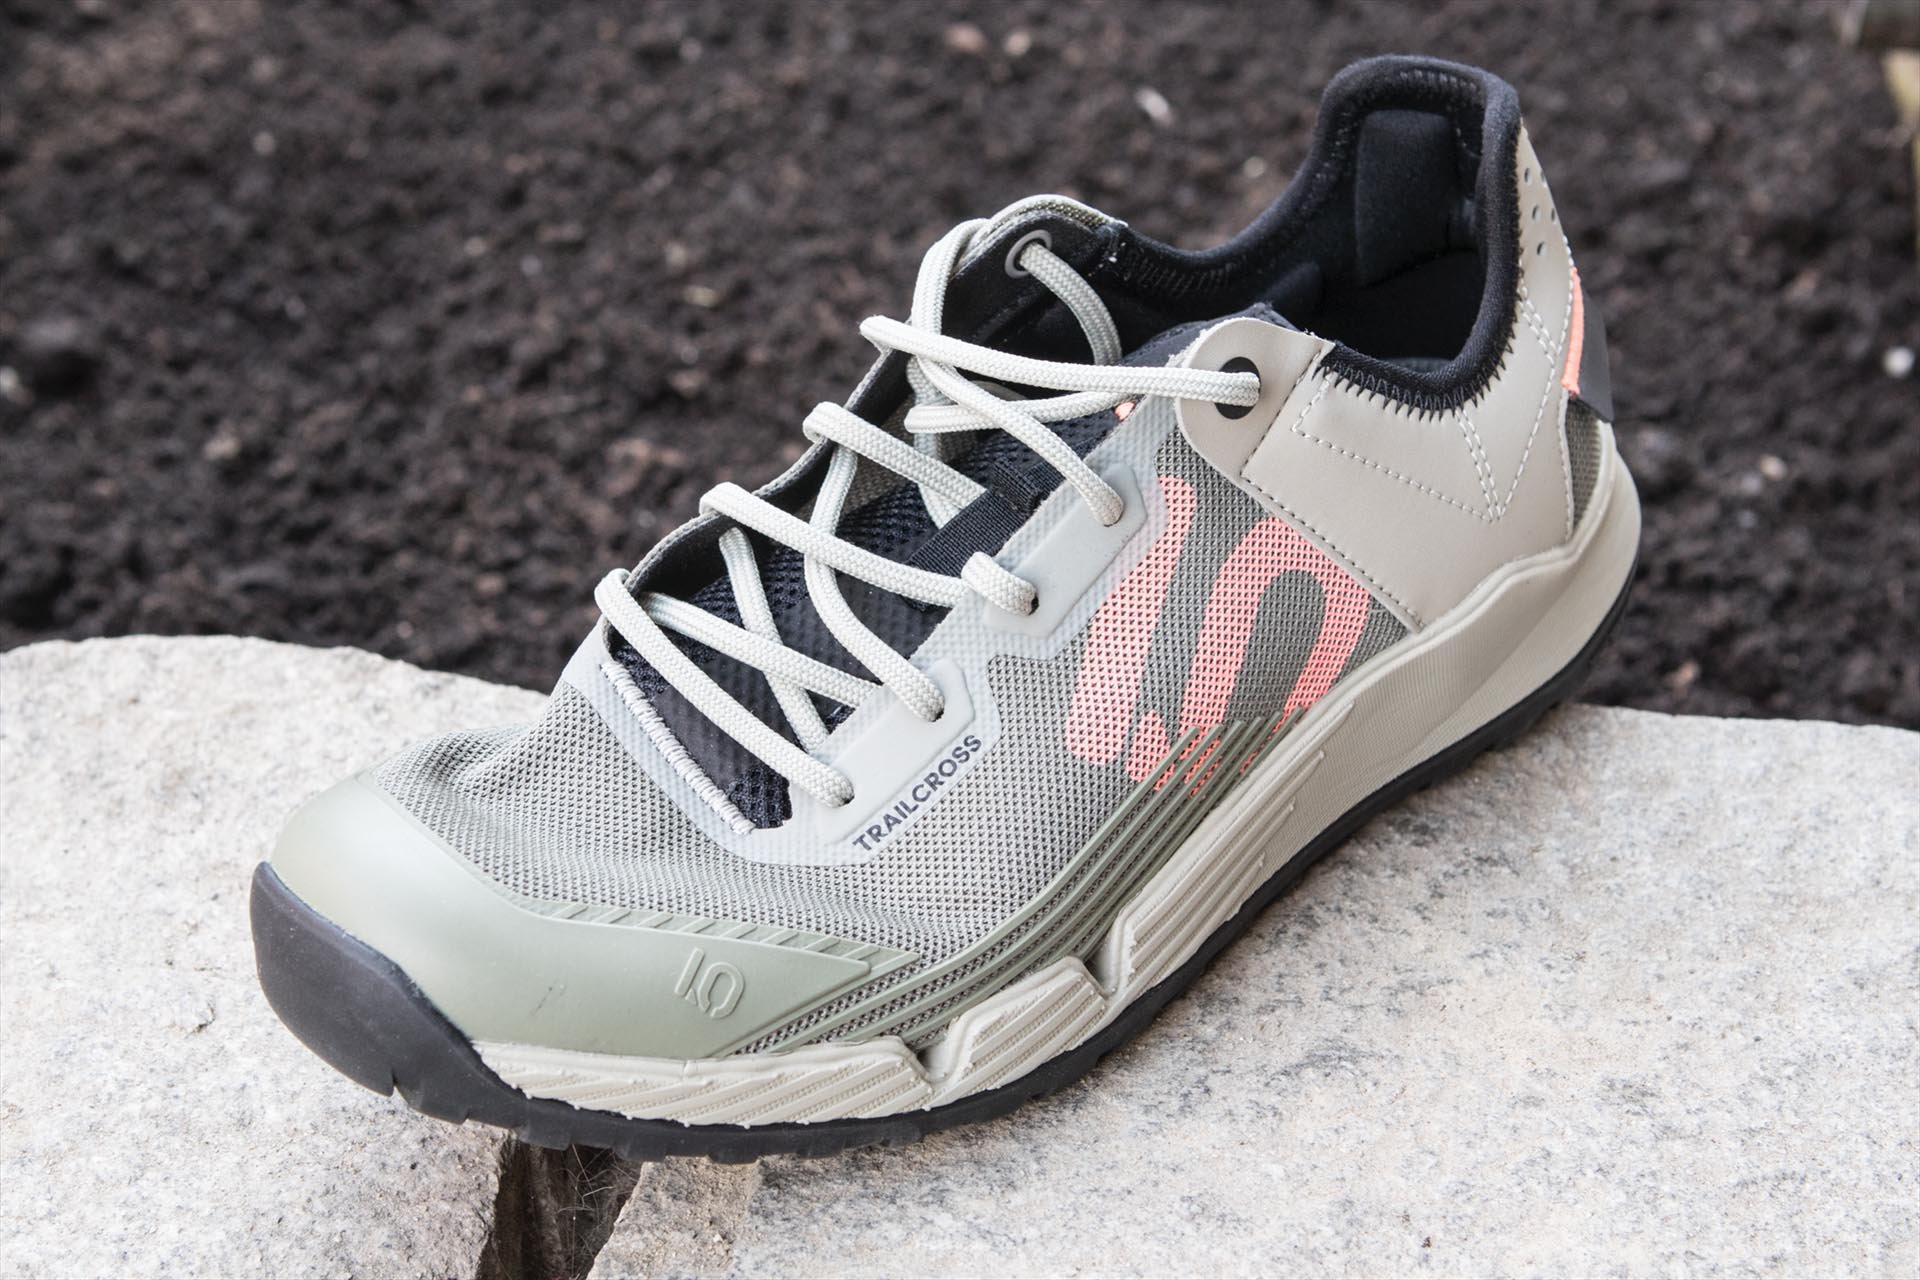 Fiveten and Adidas Reinvent the Flat Pedal Shoe - The Trailcross